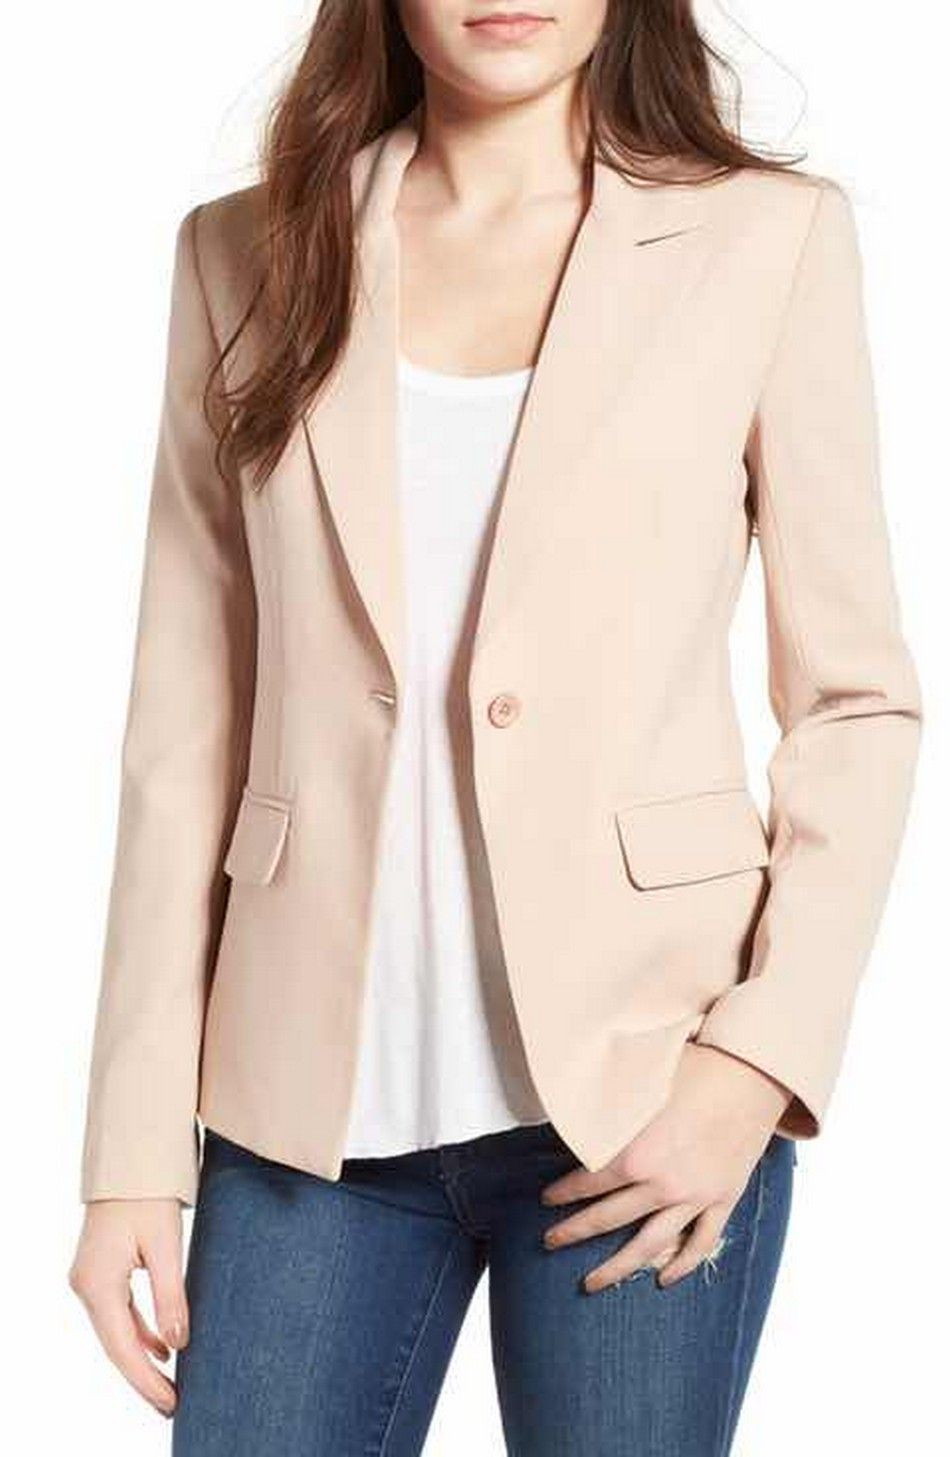 Awesome 30 Affordable Women's Outfits for Work Under $100 You Must Have30 Affordable Women's Outfits for Work Under $100 You Must Have https://www.fashionetter.com/2017/03/27/30-affordable-womens-outfits-work-100-must/